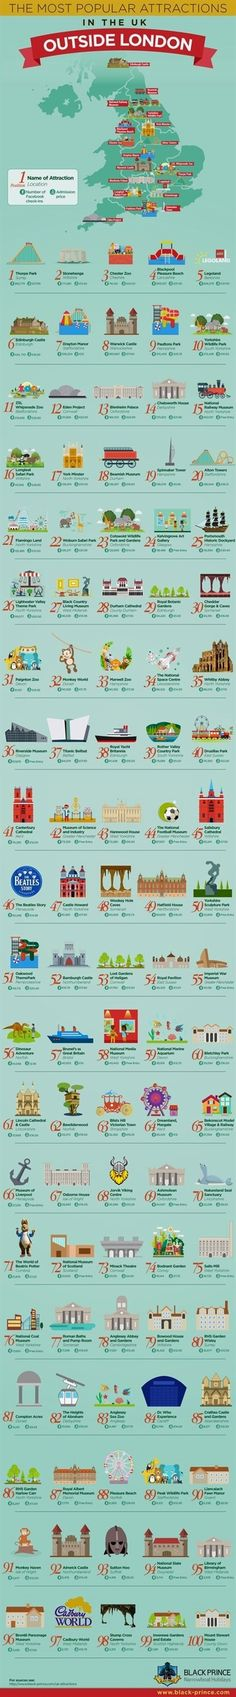 100 Most Popular Attractions Outside Of London  - If you want to travel in the UK, however, not in London then this infographic will tell you the 100 top most popular attractions outside of London. - #infographic  #TravelIdeas